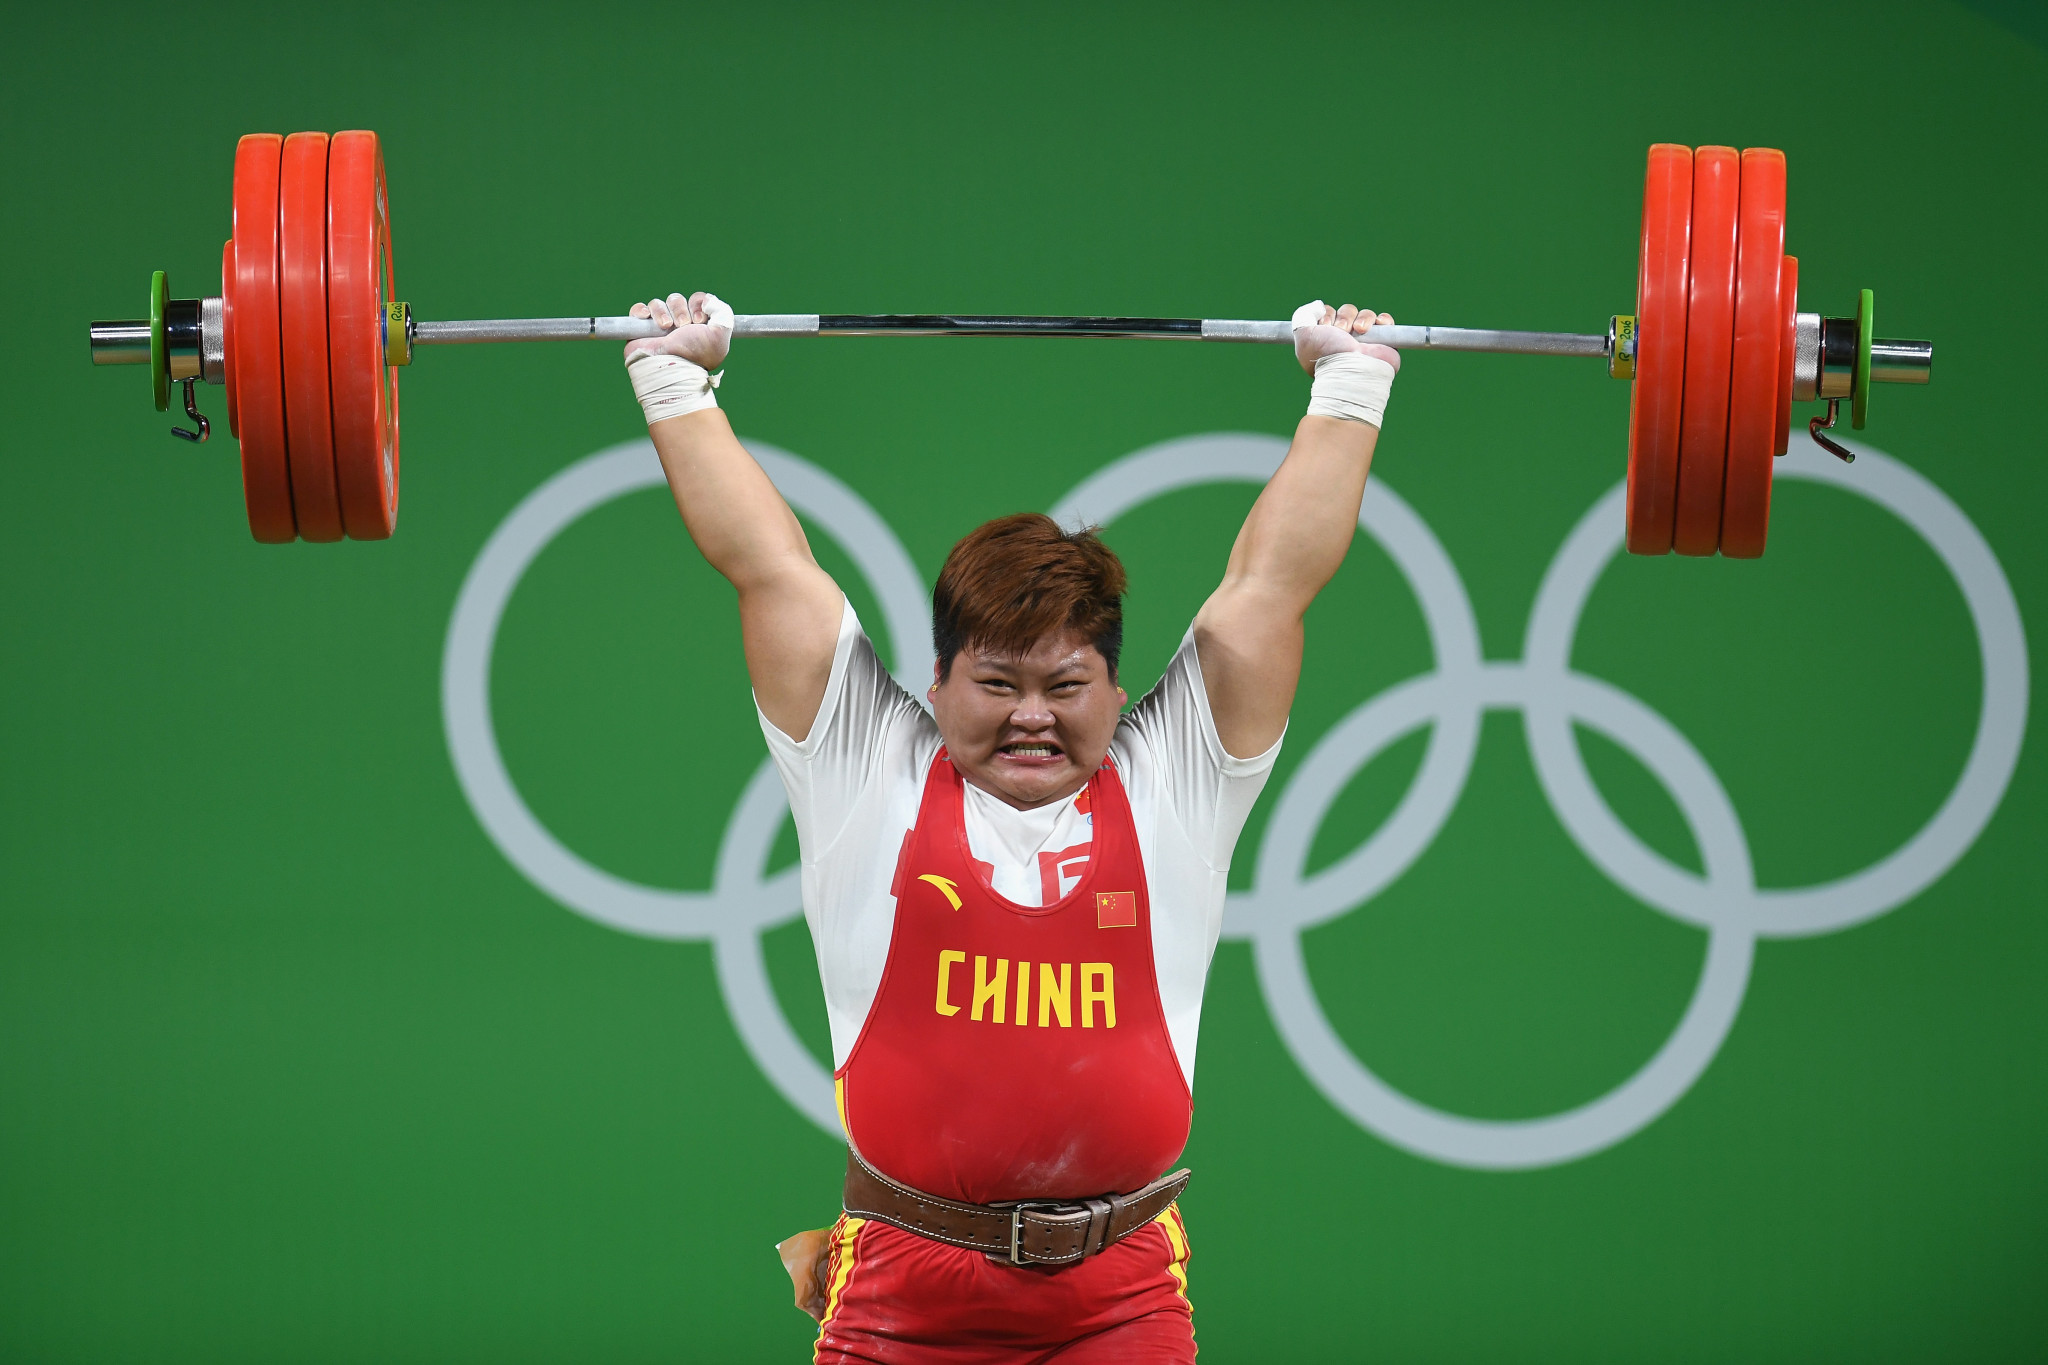 Meng Suping was one of five five Chinese Olympic weightlifting champions at Rio 2016 ©Getty Images